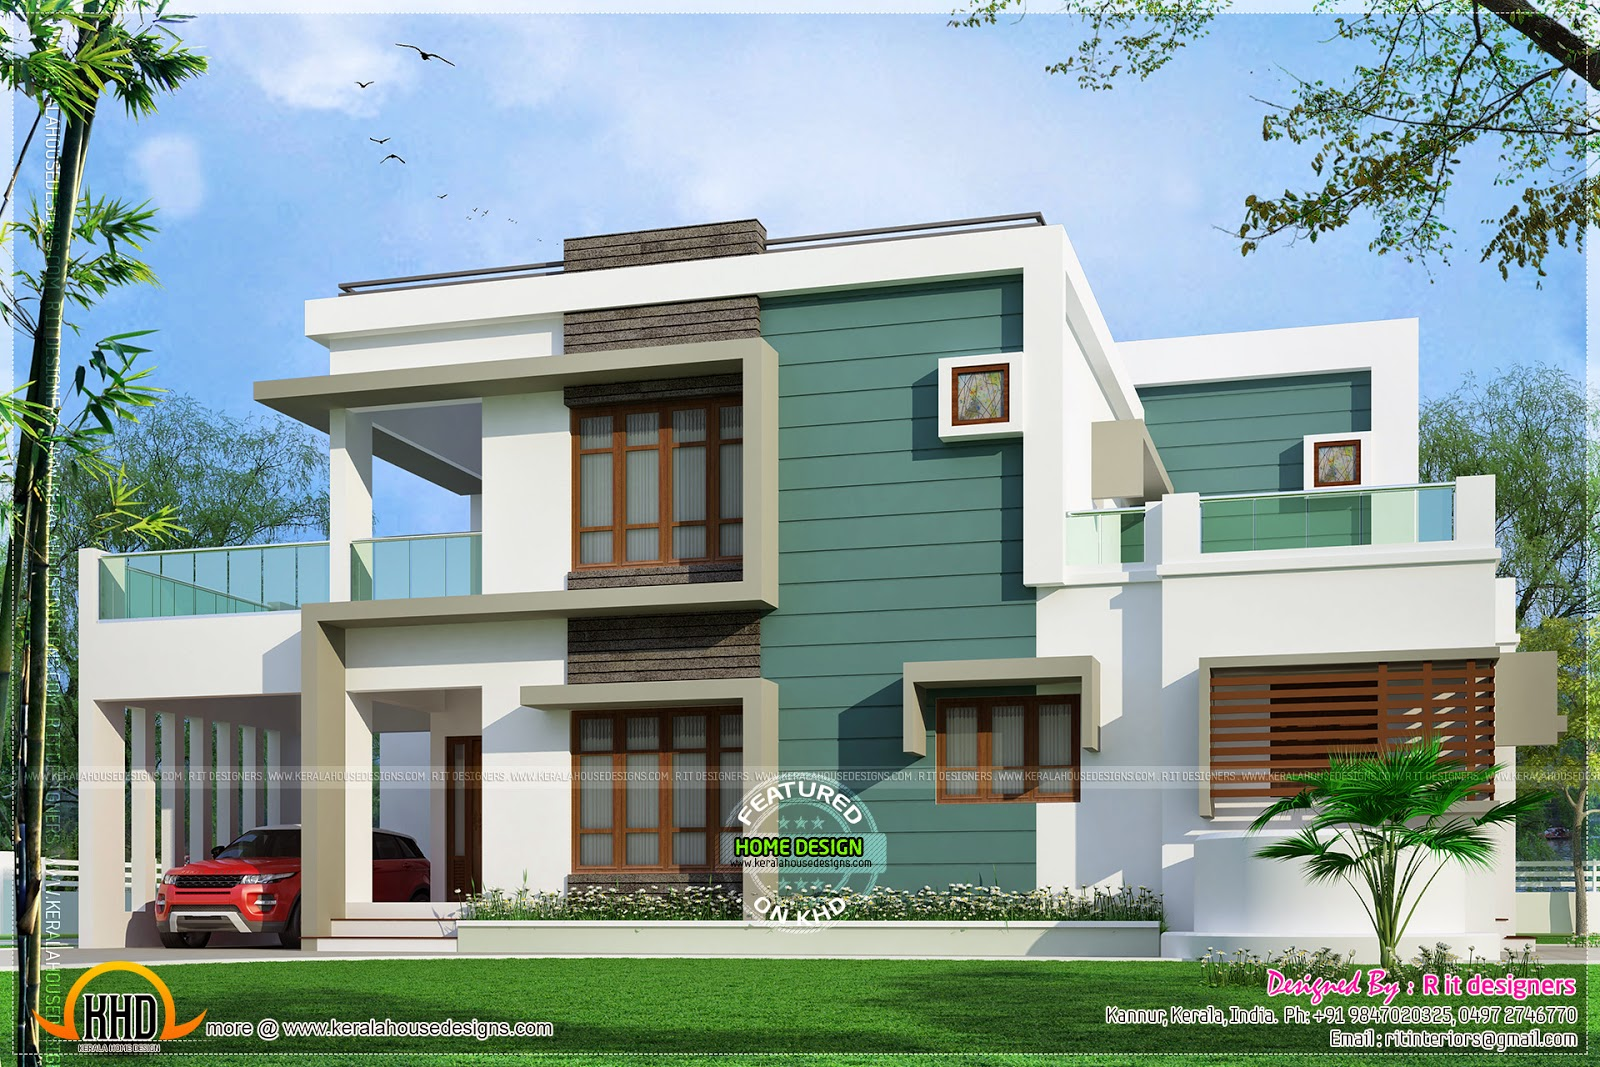 Kannur home design kerala home design and floor plans Home design ideas photos architecture